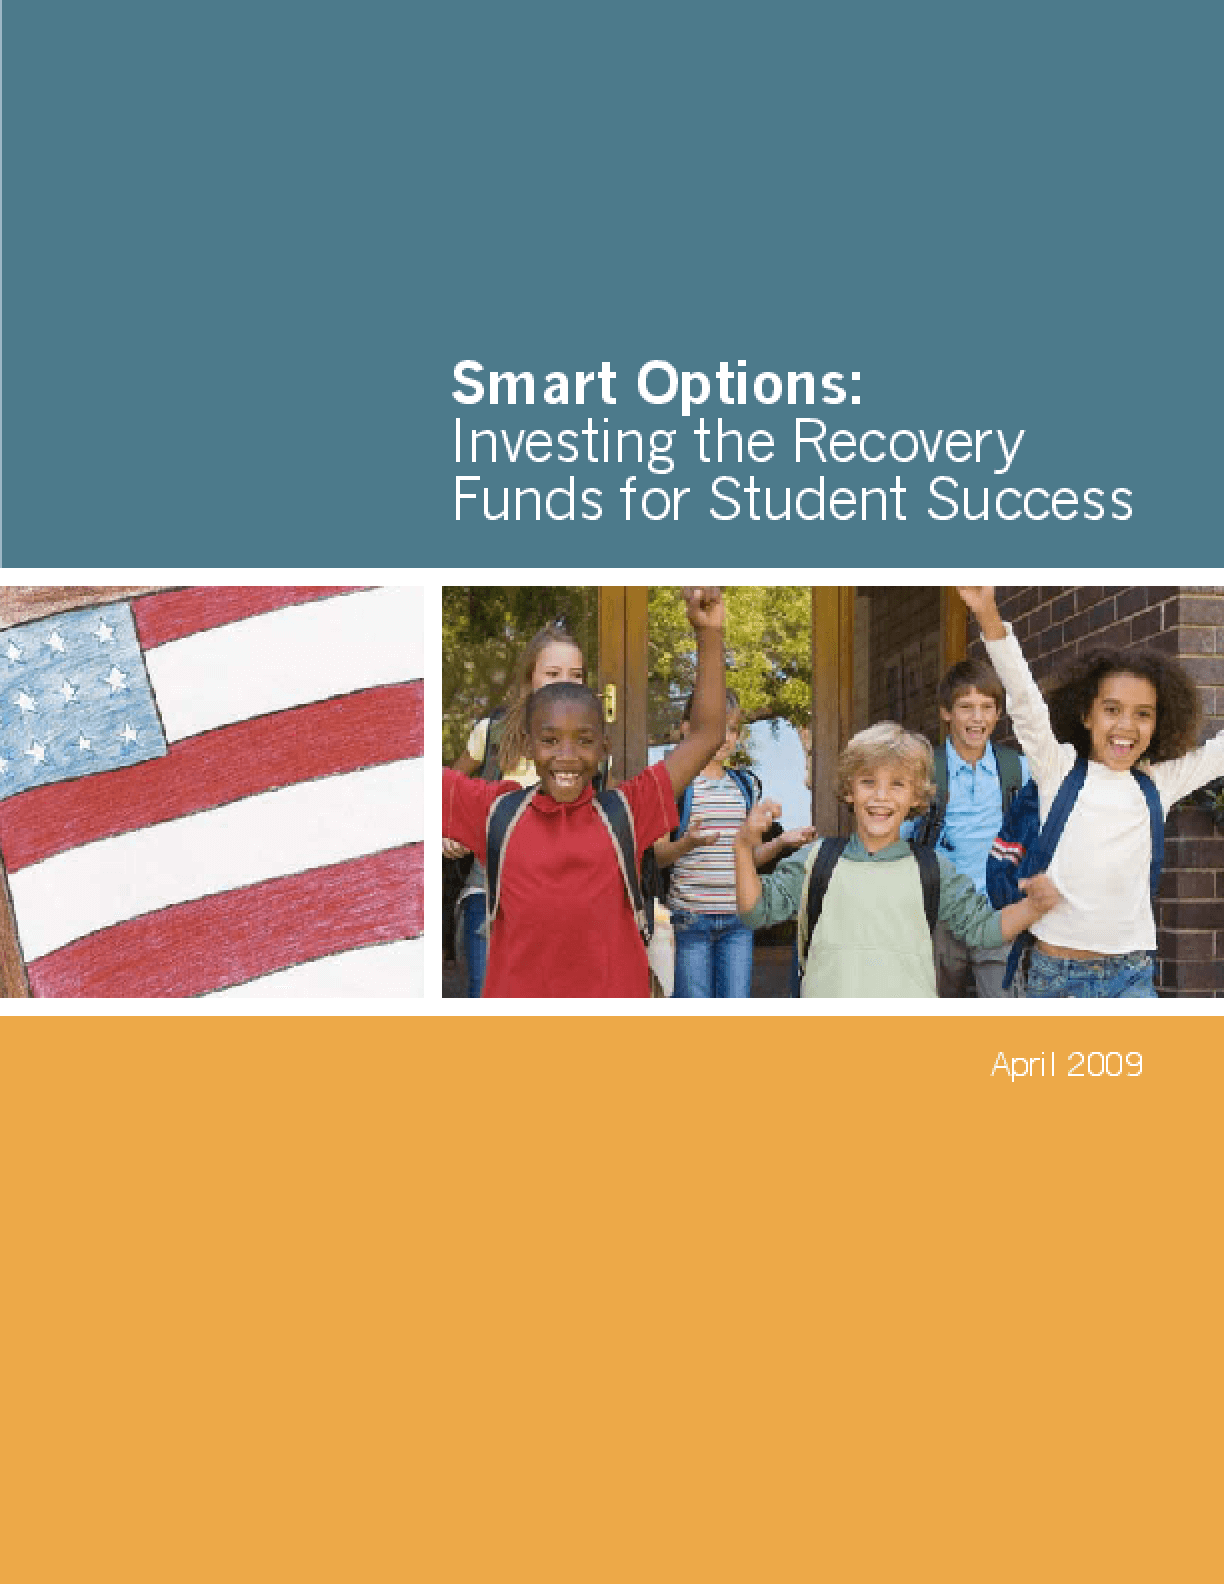 Smart Options: Investing the Recovery Funds for Student Success